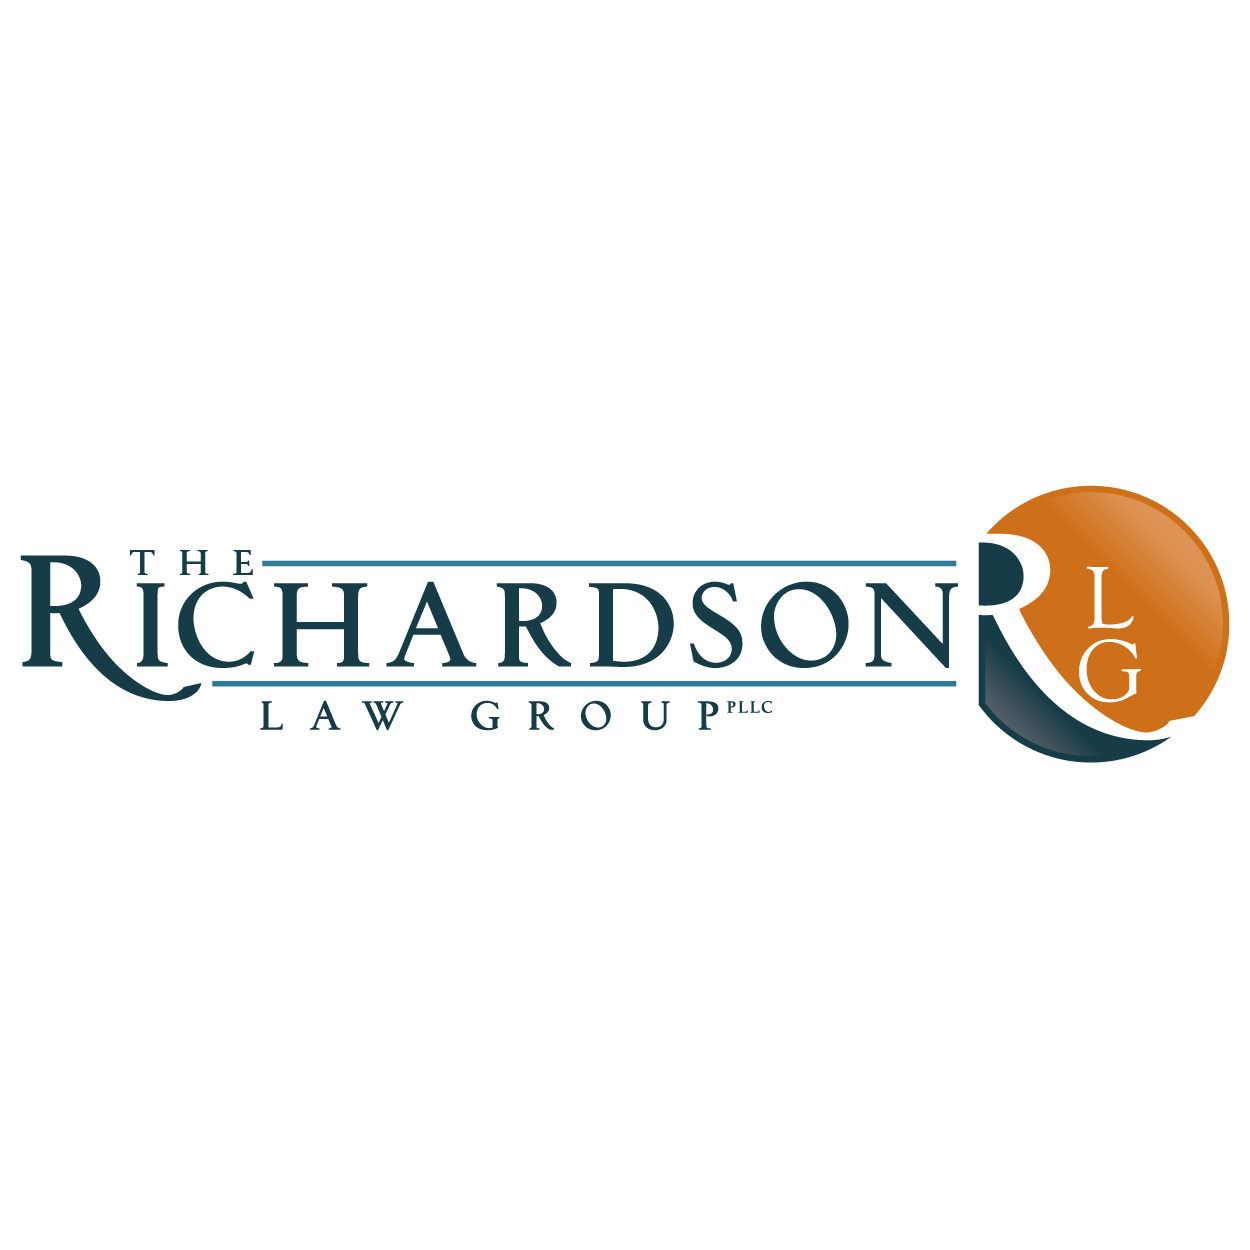 The Richardson Law Group